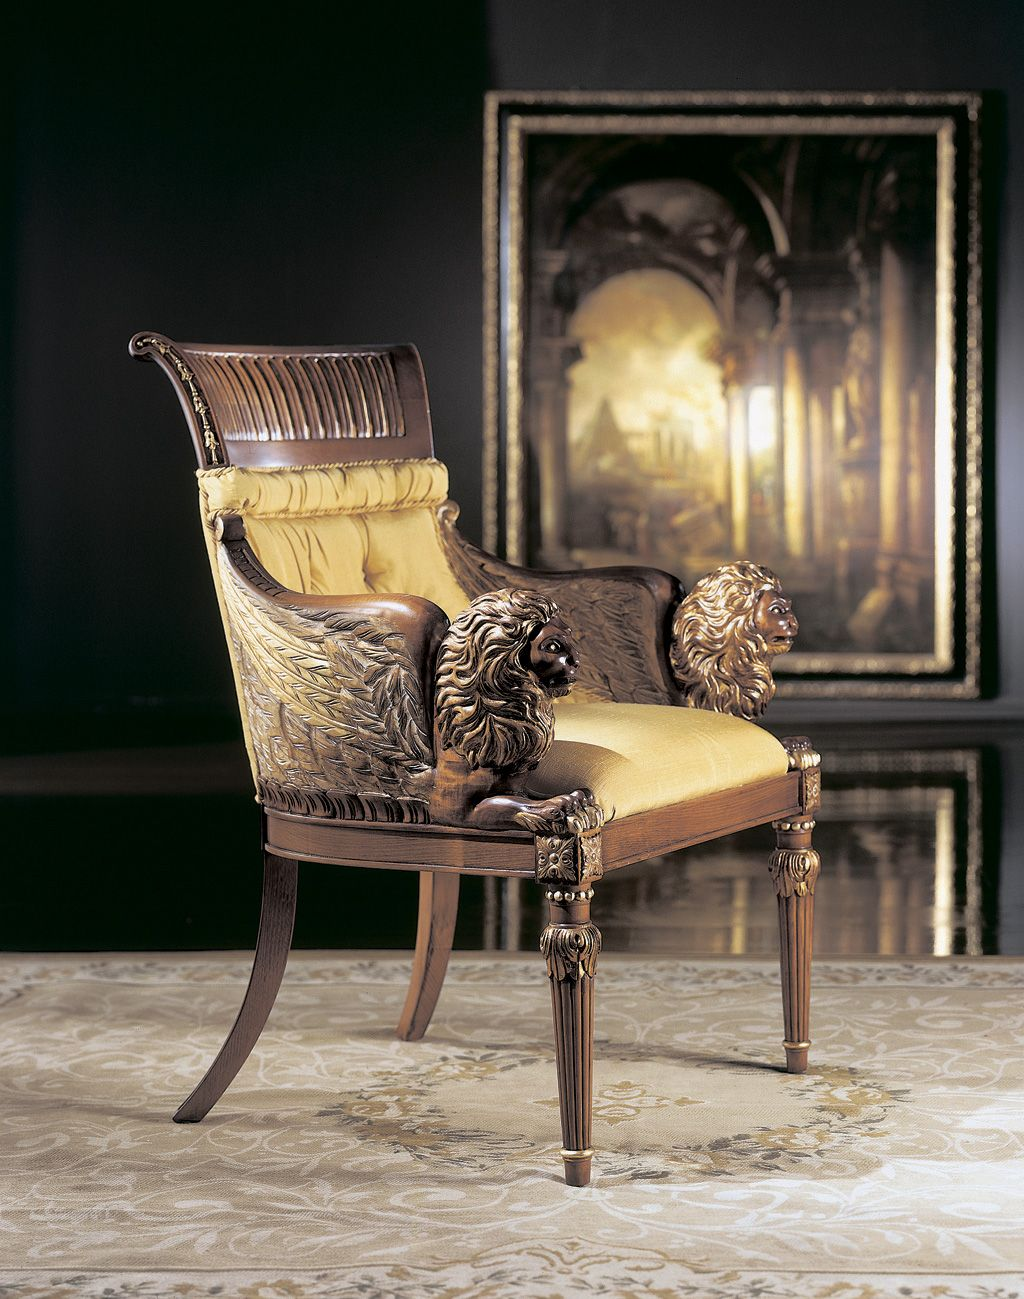 Zanaboni Salotti Classici.Luxury Furniture Design Zanaboni Salotti Classici S N C